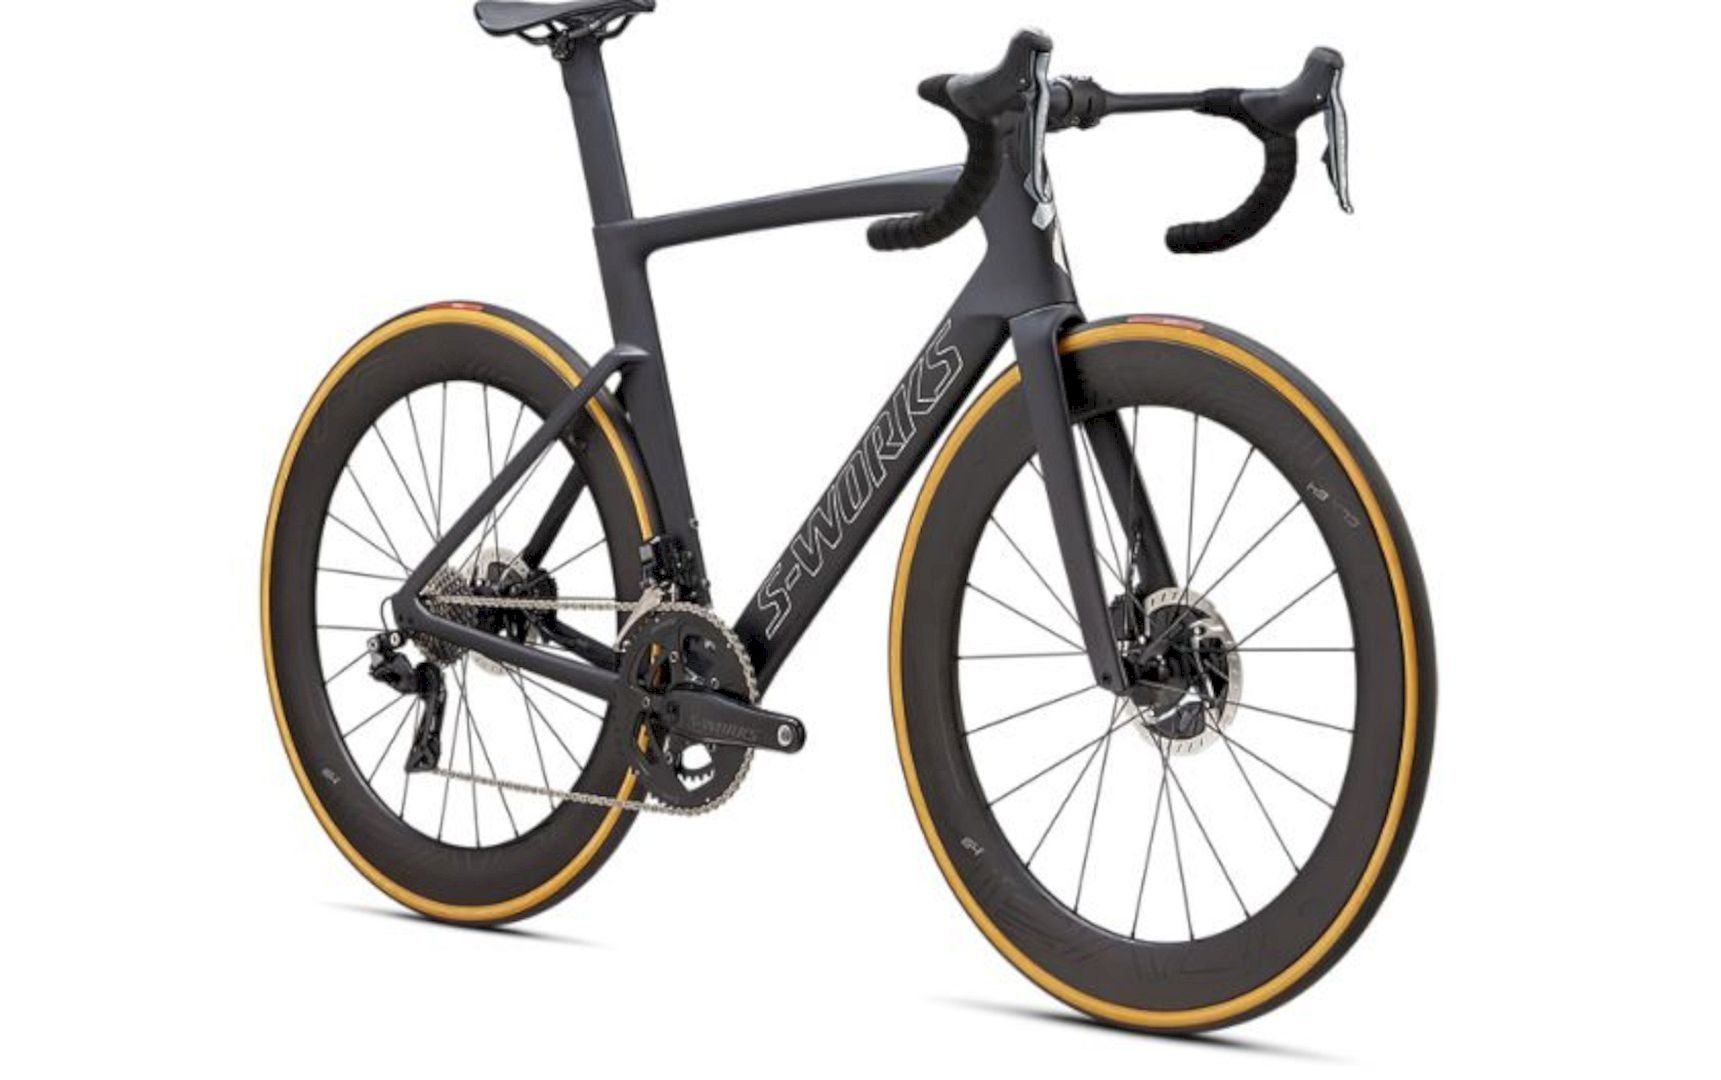 S Works Venge The New Shape Of Speed With Aerodynamic